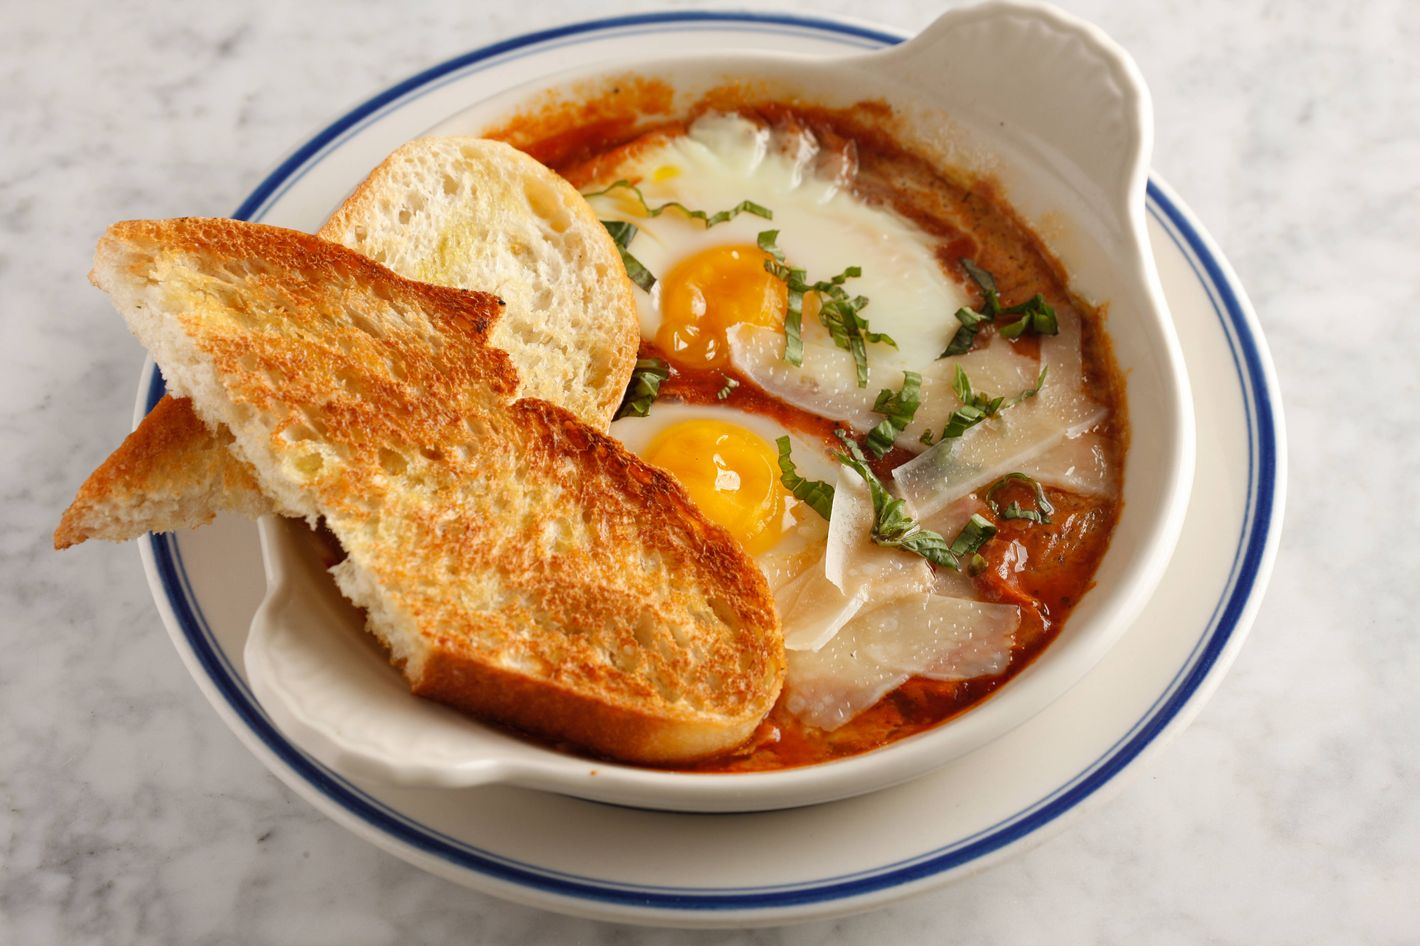 Baked eggs in housemade marinara sauce with basil and Parmesan.